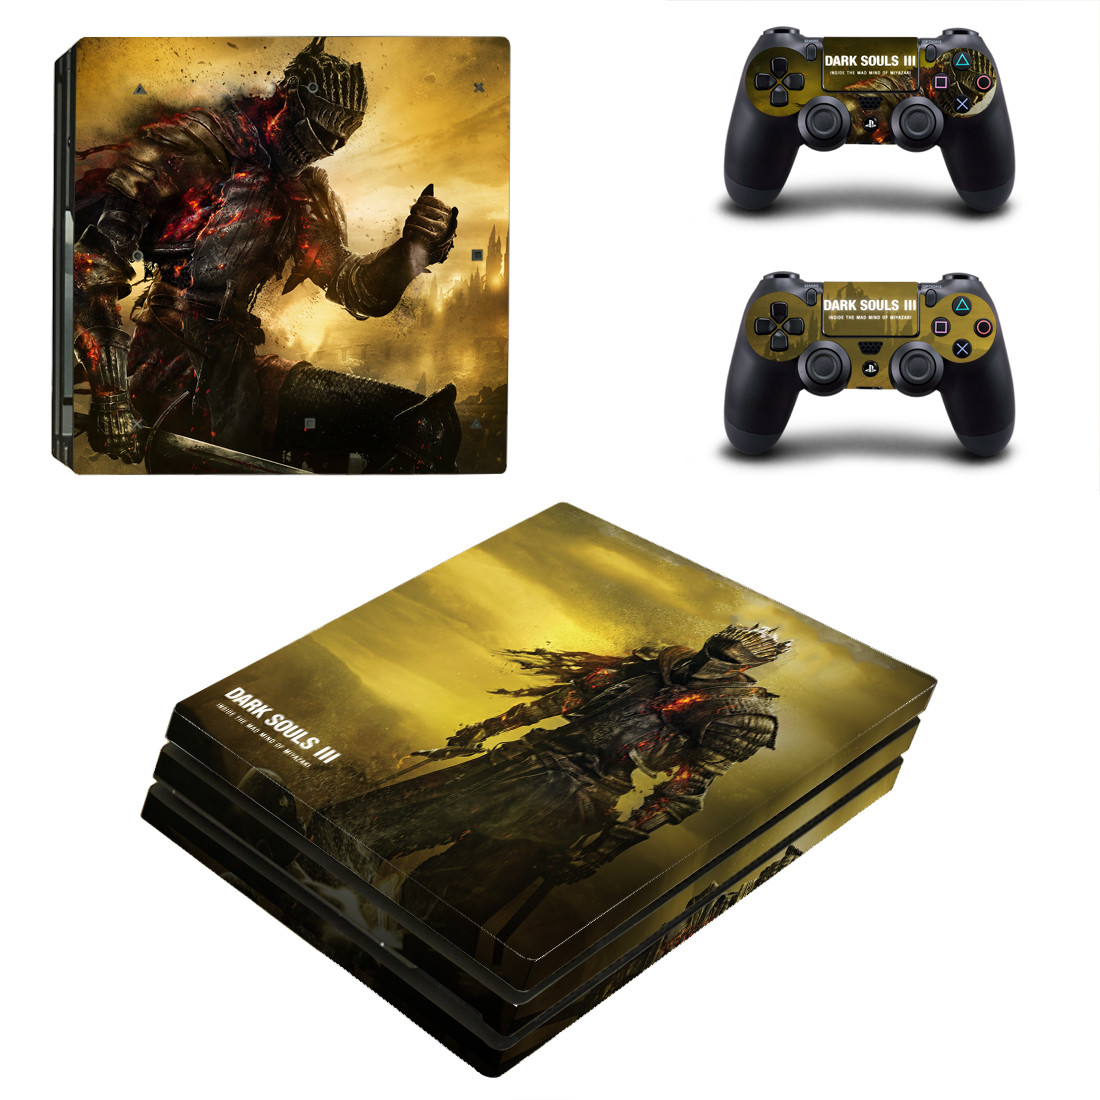 Dark Souls 3 PS4 Pro Stickers Play station 4 PS 4 Pro Skin Sticker Decal Cover For Sony Playstation 4 Pro Console and Controller(China)